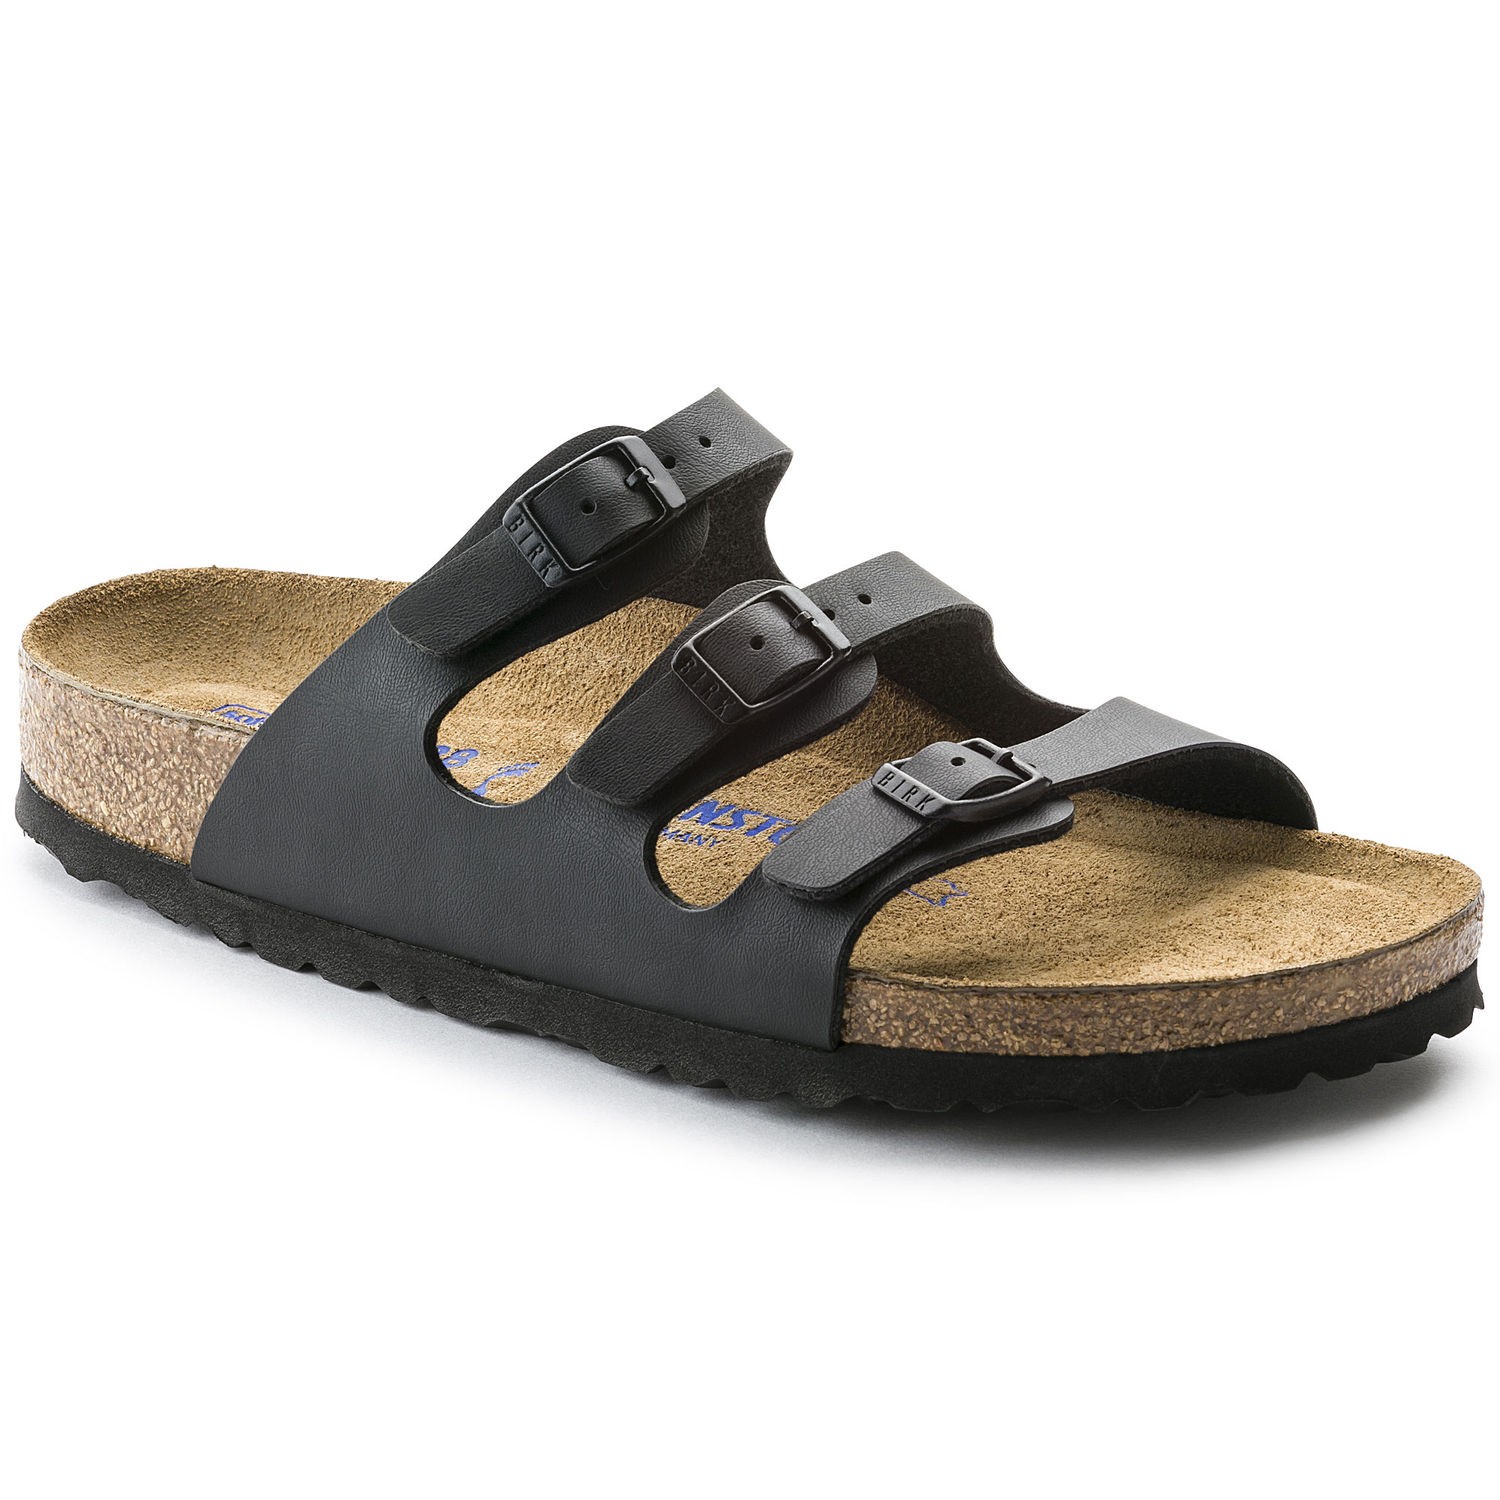 Florida Soft Sandal